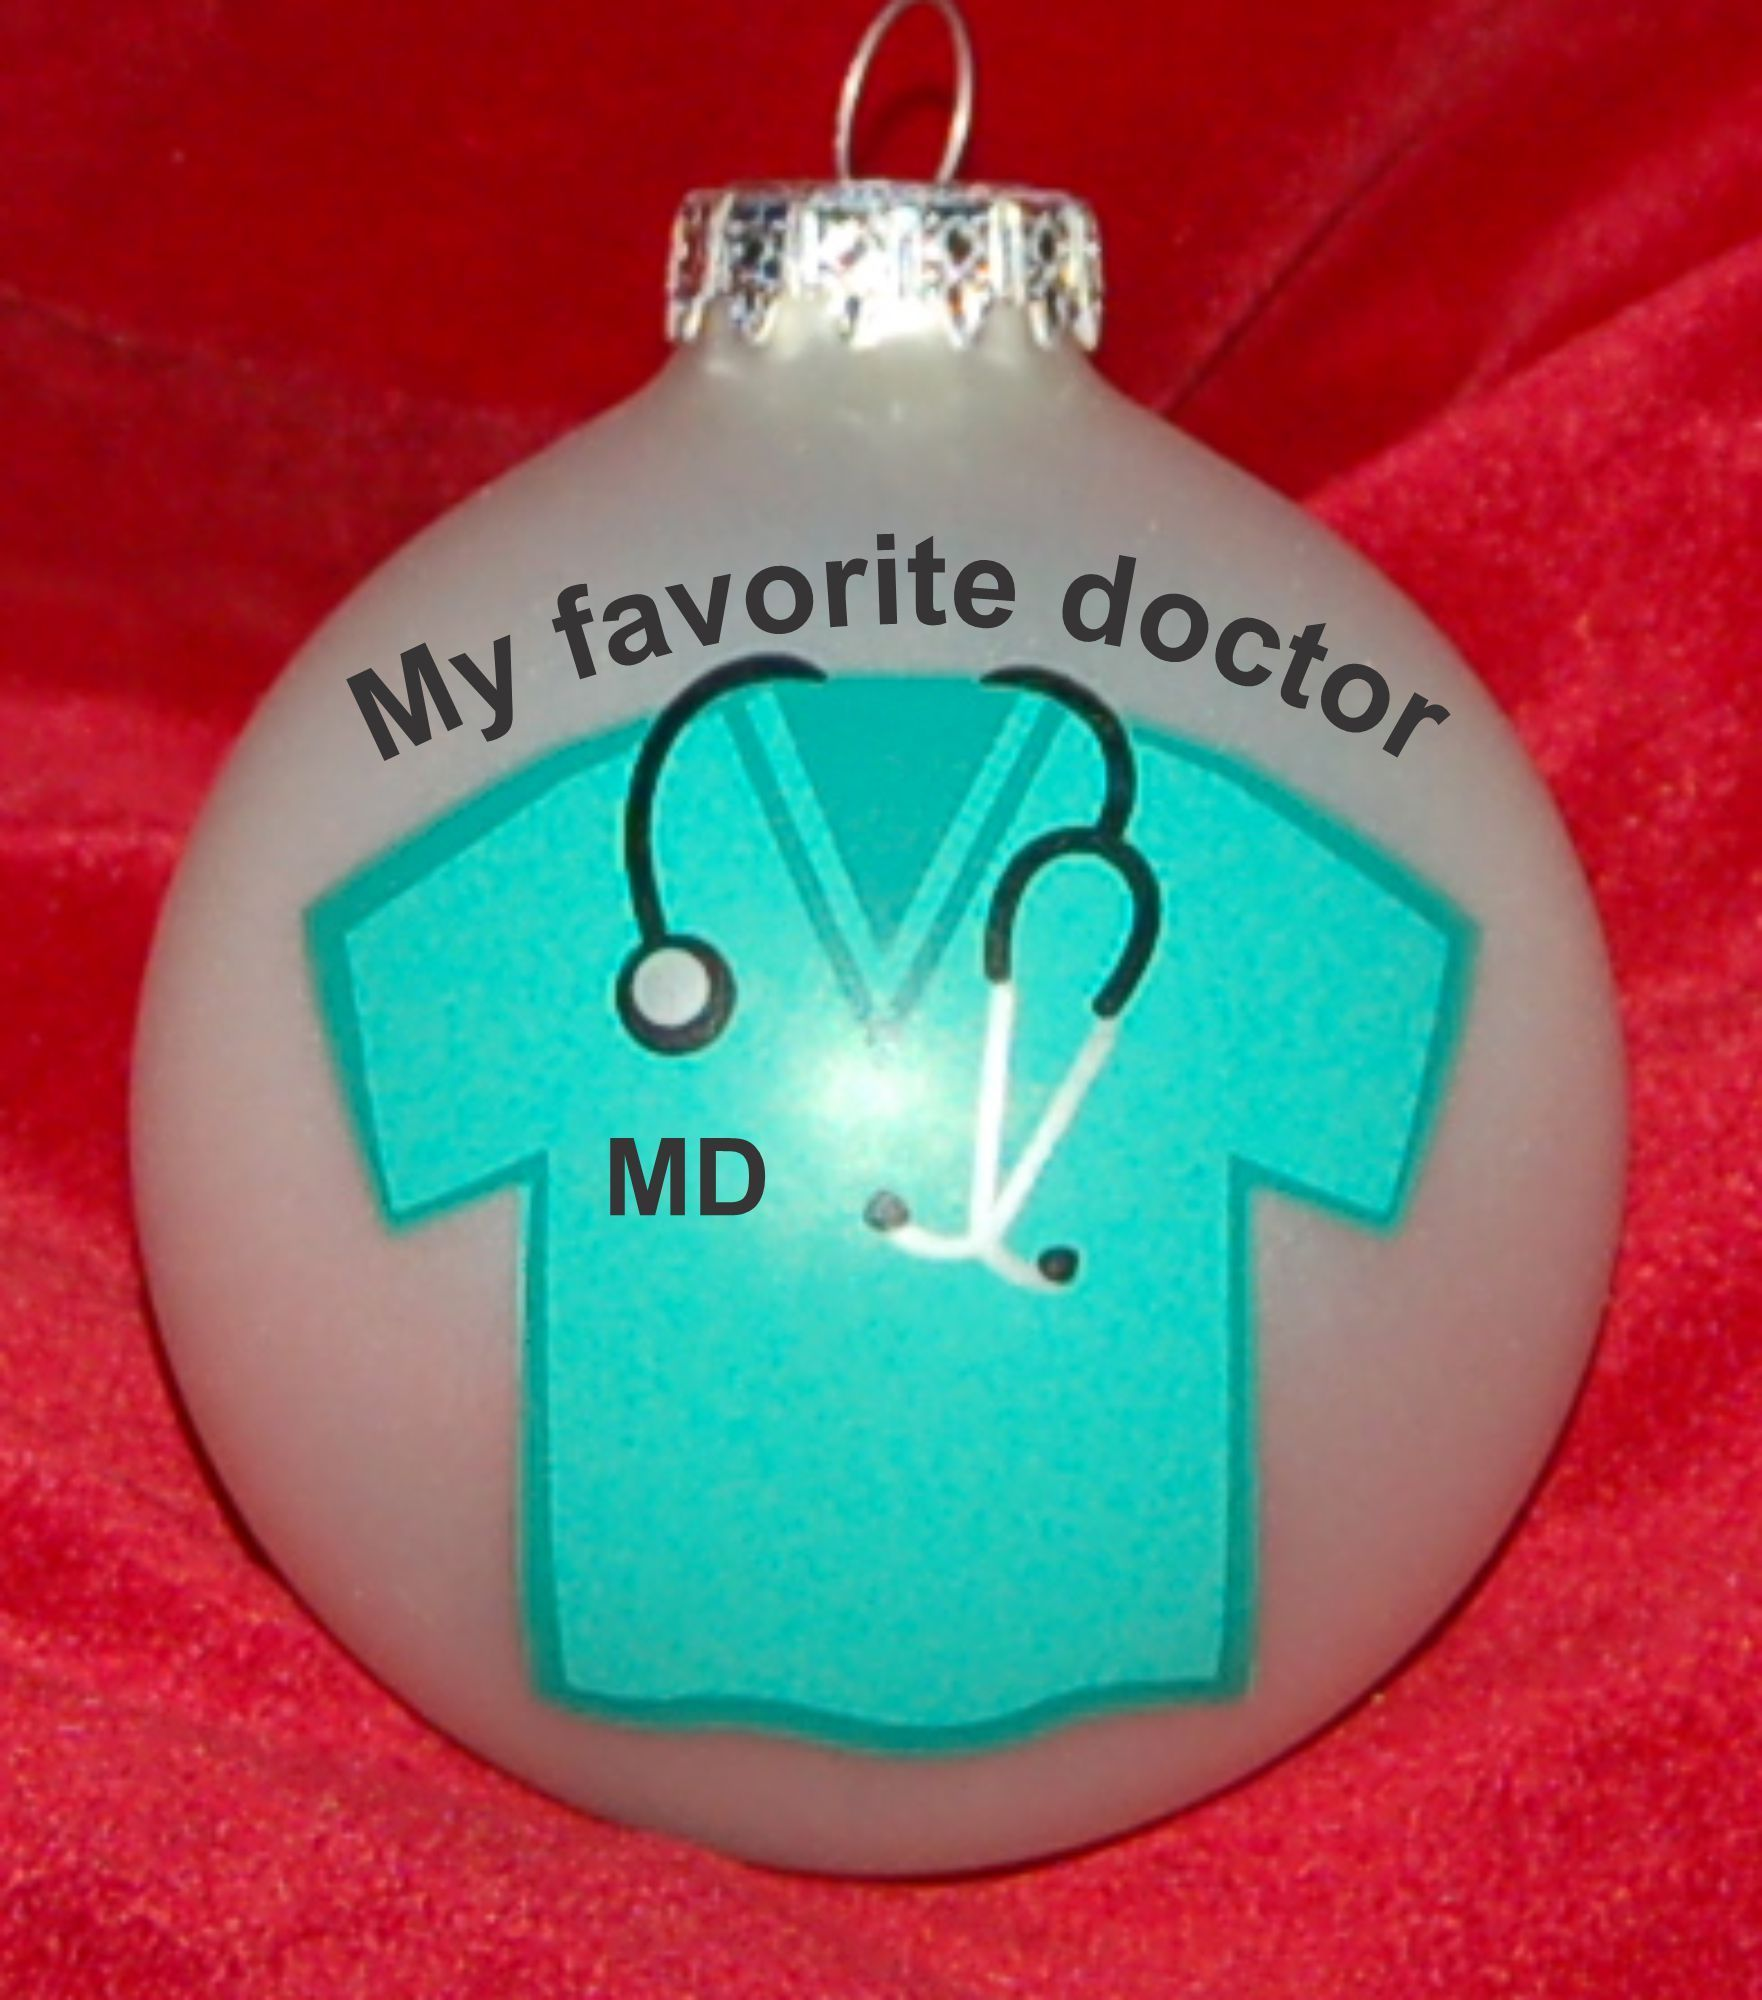 Thanks to Doctor Gift Christmas Ornament Personalized by Russell Rhodes